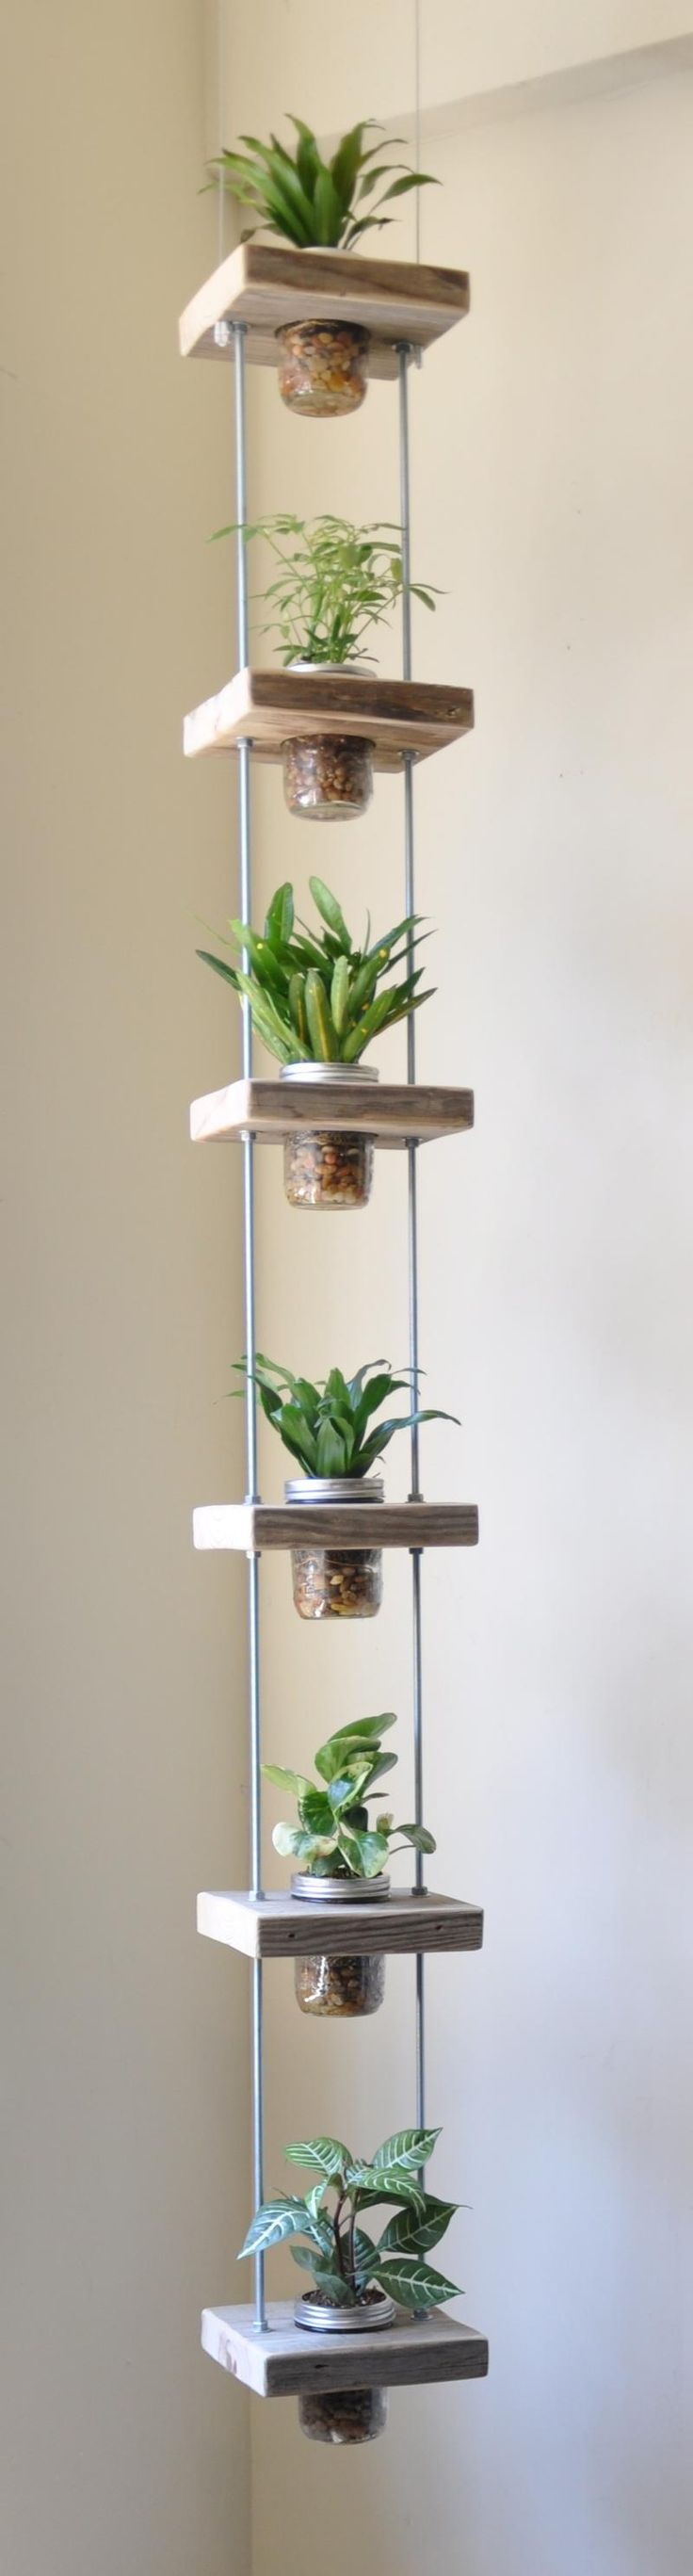 Make It: Vertical Mason Jar Herb Garden - Tutorial #home